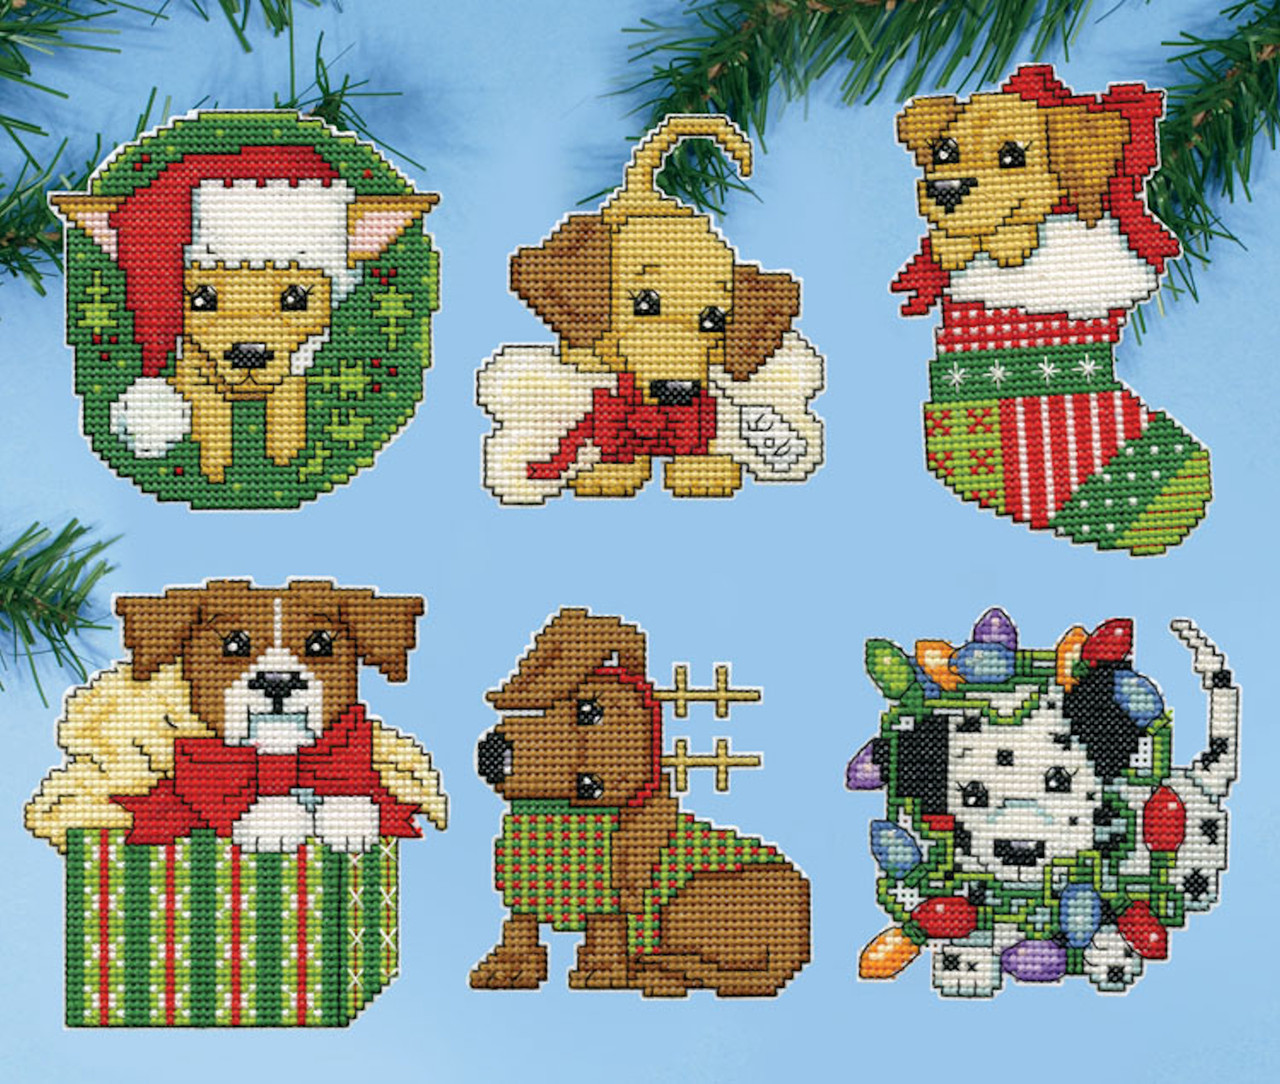 Christmas Puppies.Design Works Christmas Puppies Ornaments